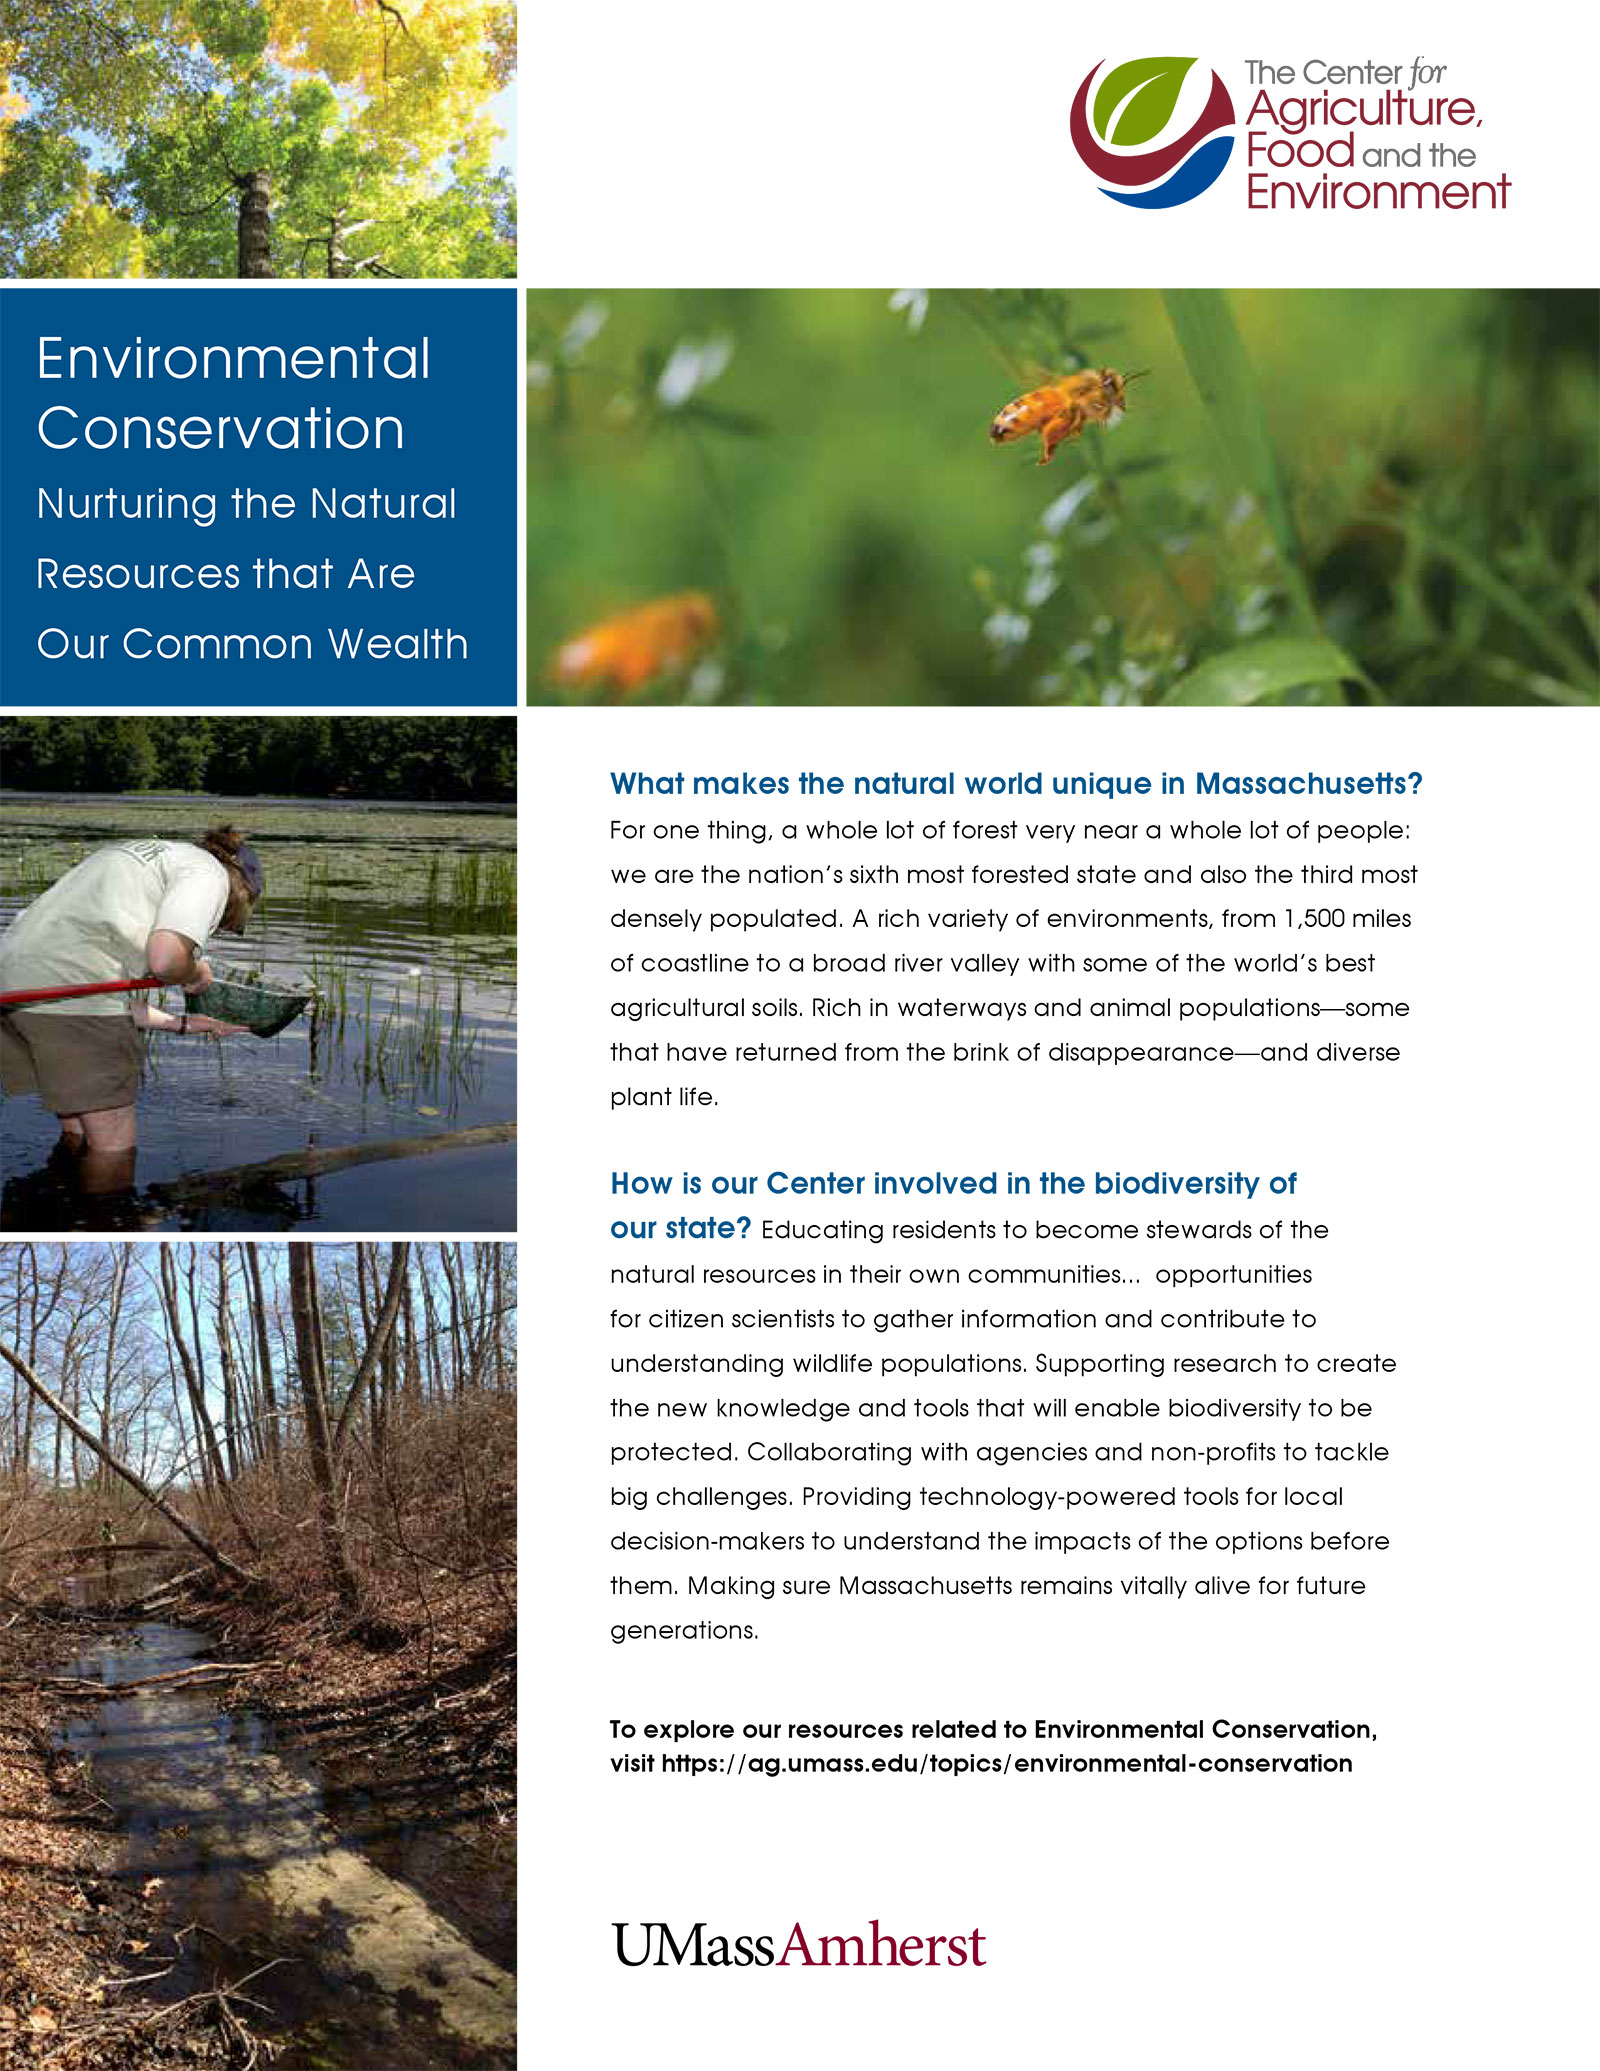 Environmental Conservation insert for CAFE promotional material